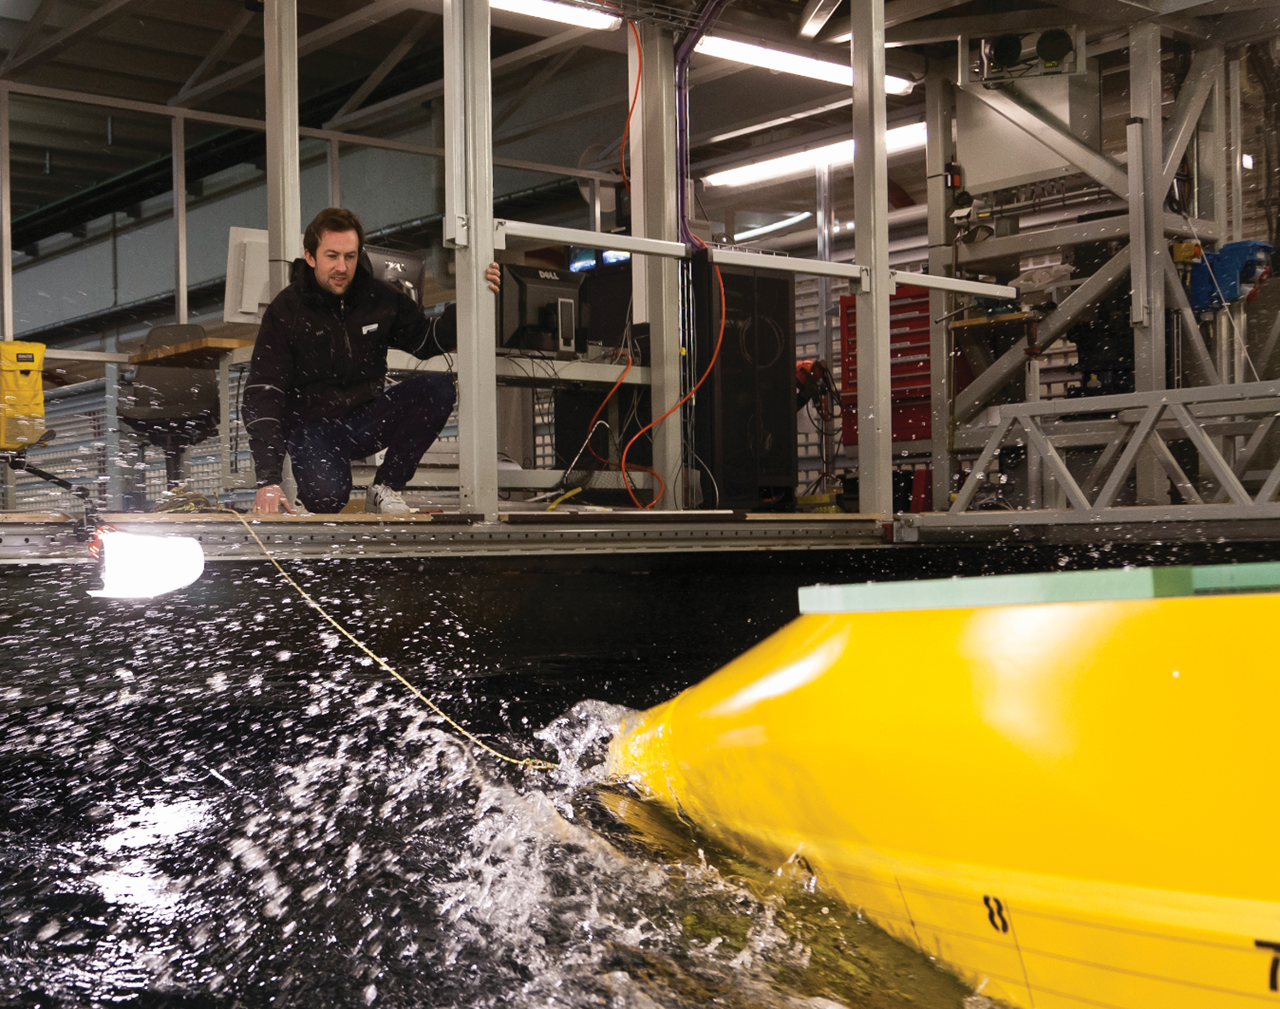 Toralf Hamstad tests a new hull in the ship model tank at SINTEF in Trondheim, Norway. Photo: Thor Nielsen.